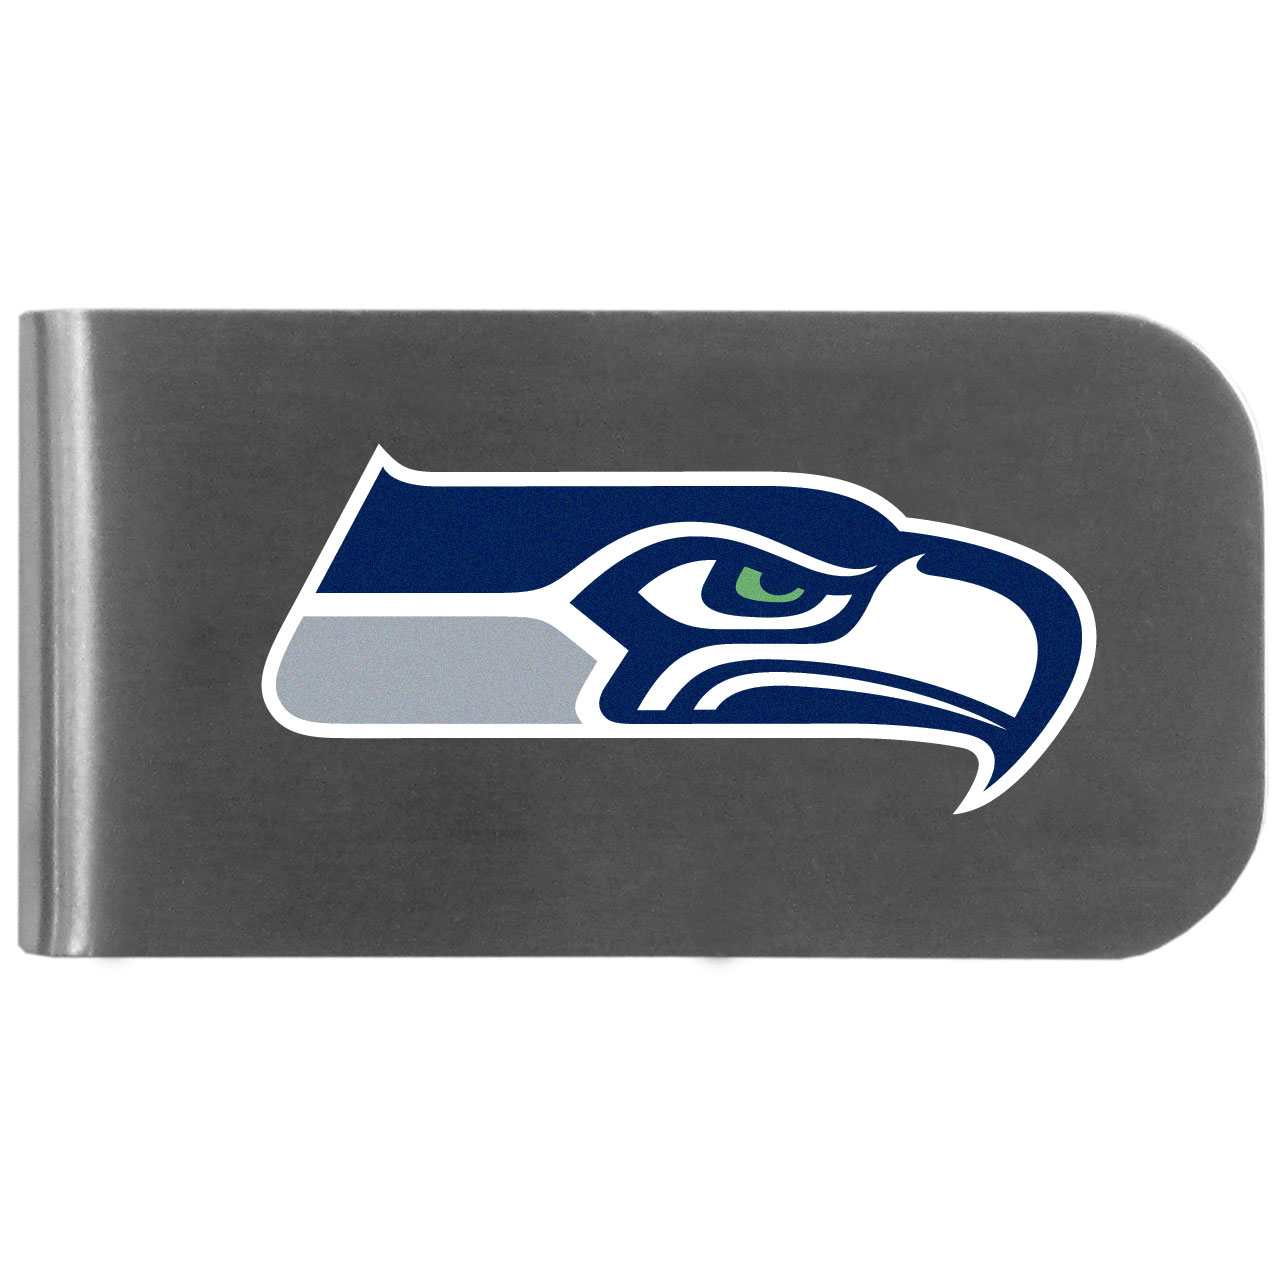 Seattle Seahawks Logo Bottle Opener Money Clip - This unique money clip features a classic, brushed-metal finish with a handy bottle opener feature on the back. The clip has the Seattle Seahawks logo expertly printed on the front of the clip.